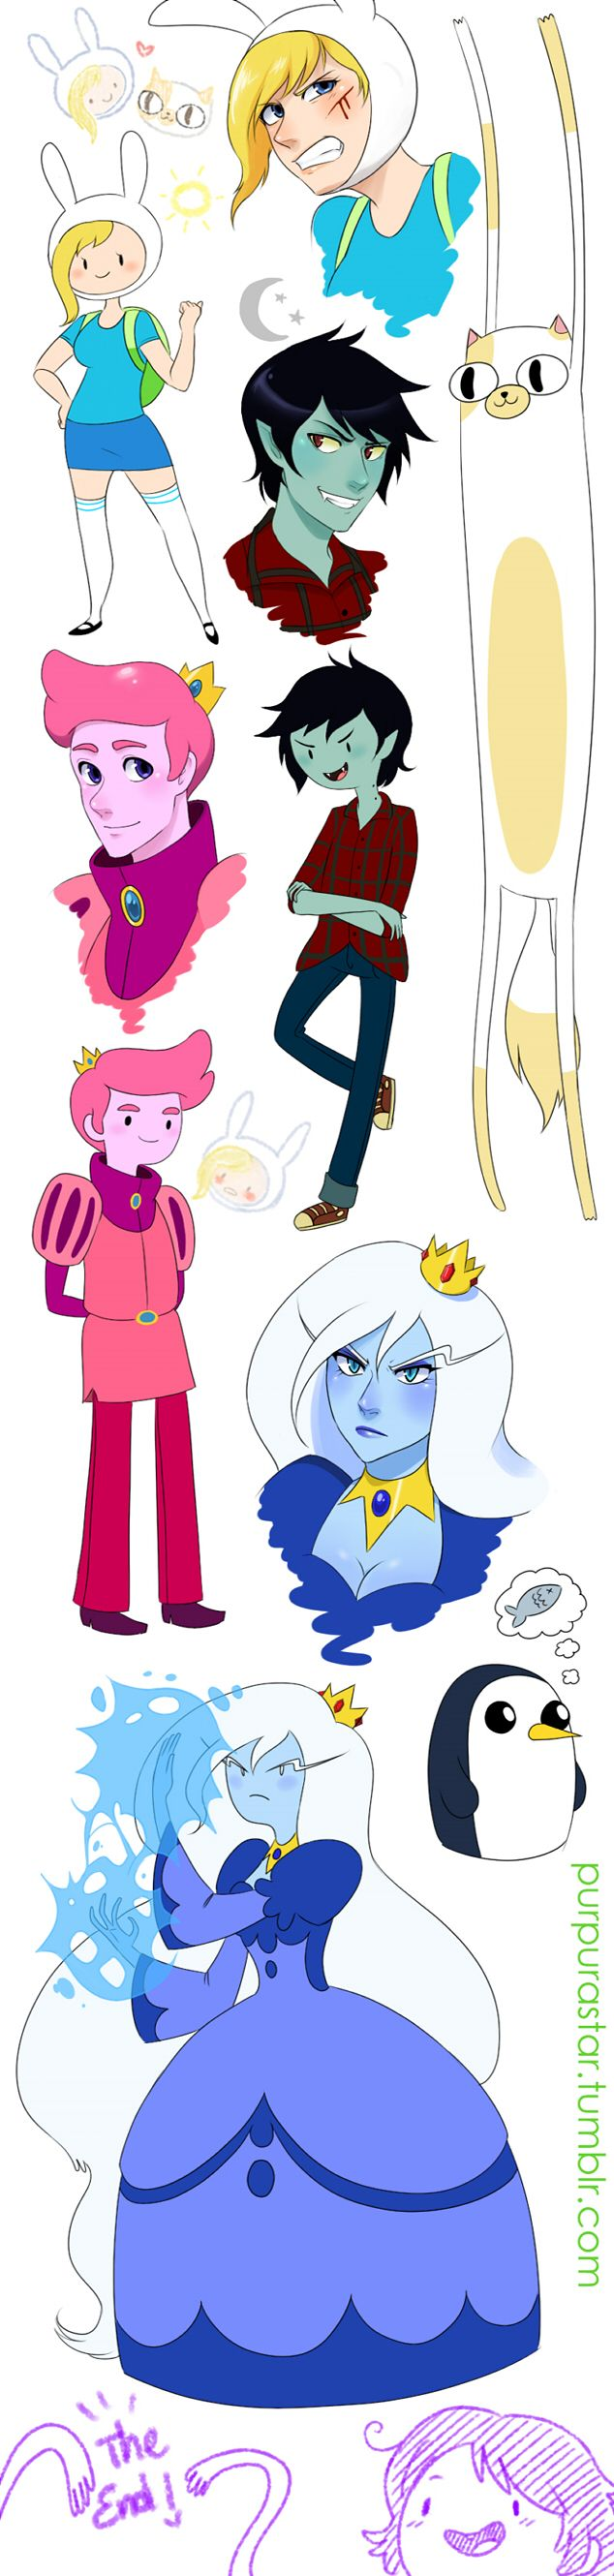 Fionna, Marshall Lee, Prince Gumball, Ice Queen, Cake from Adventure Time